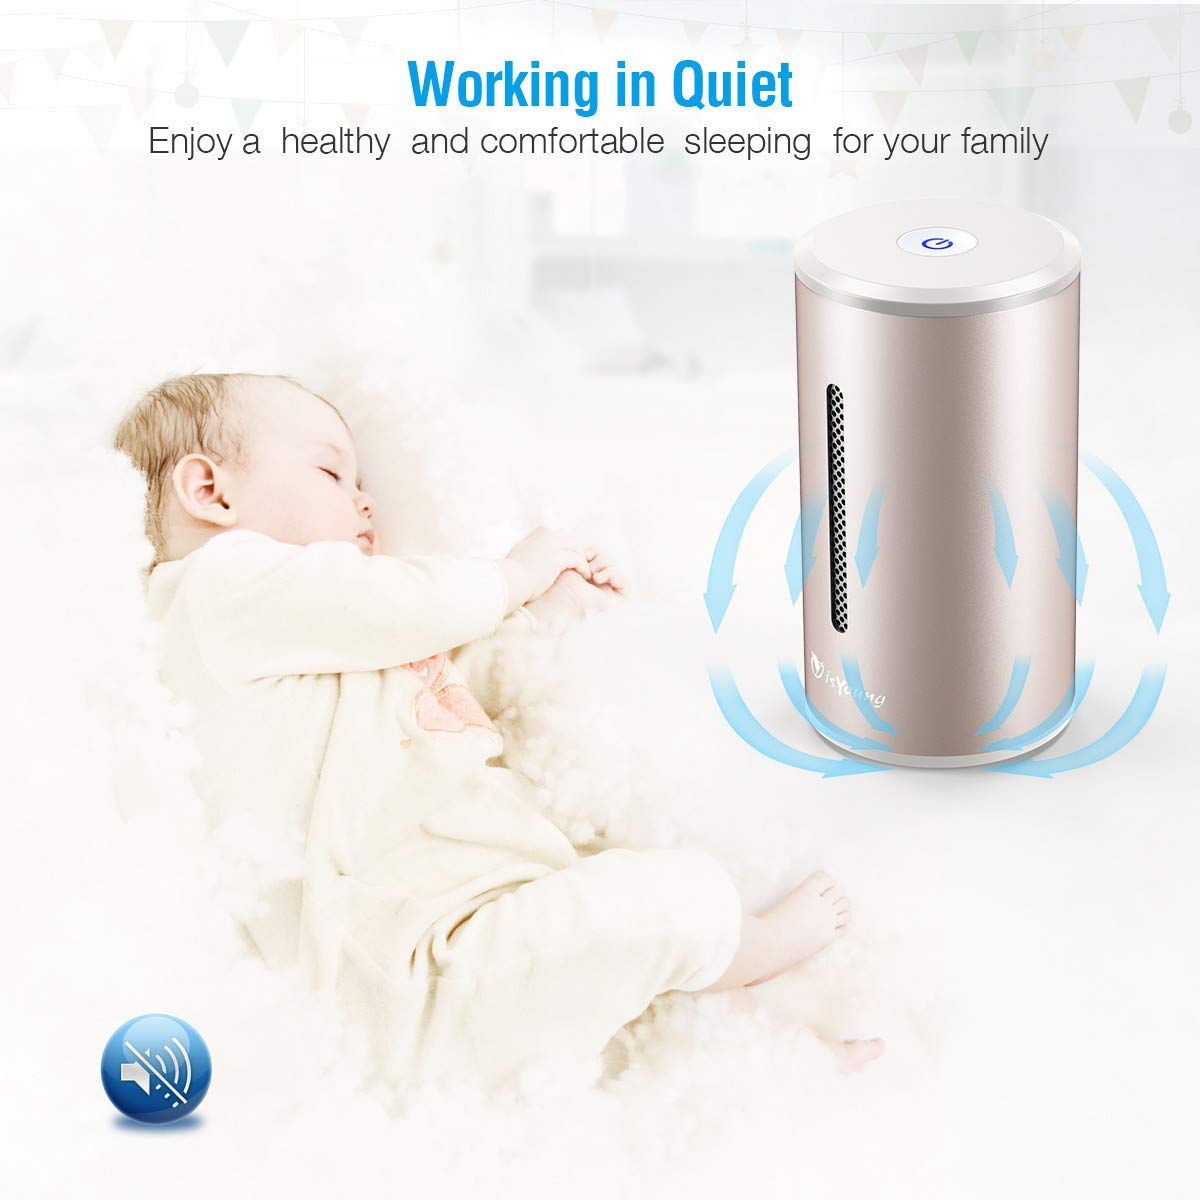 isYoung Air Purifier with True Hepa Filter, Odor Allergies Eliminator, Air Cleaner for Smokers, Smoke, Dust, Mold, Home and Pets (Gold)